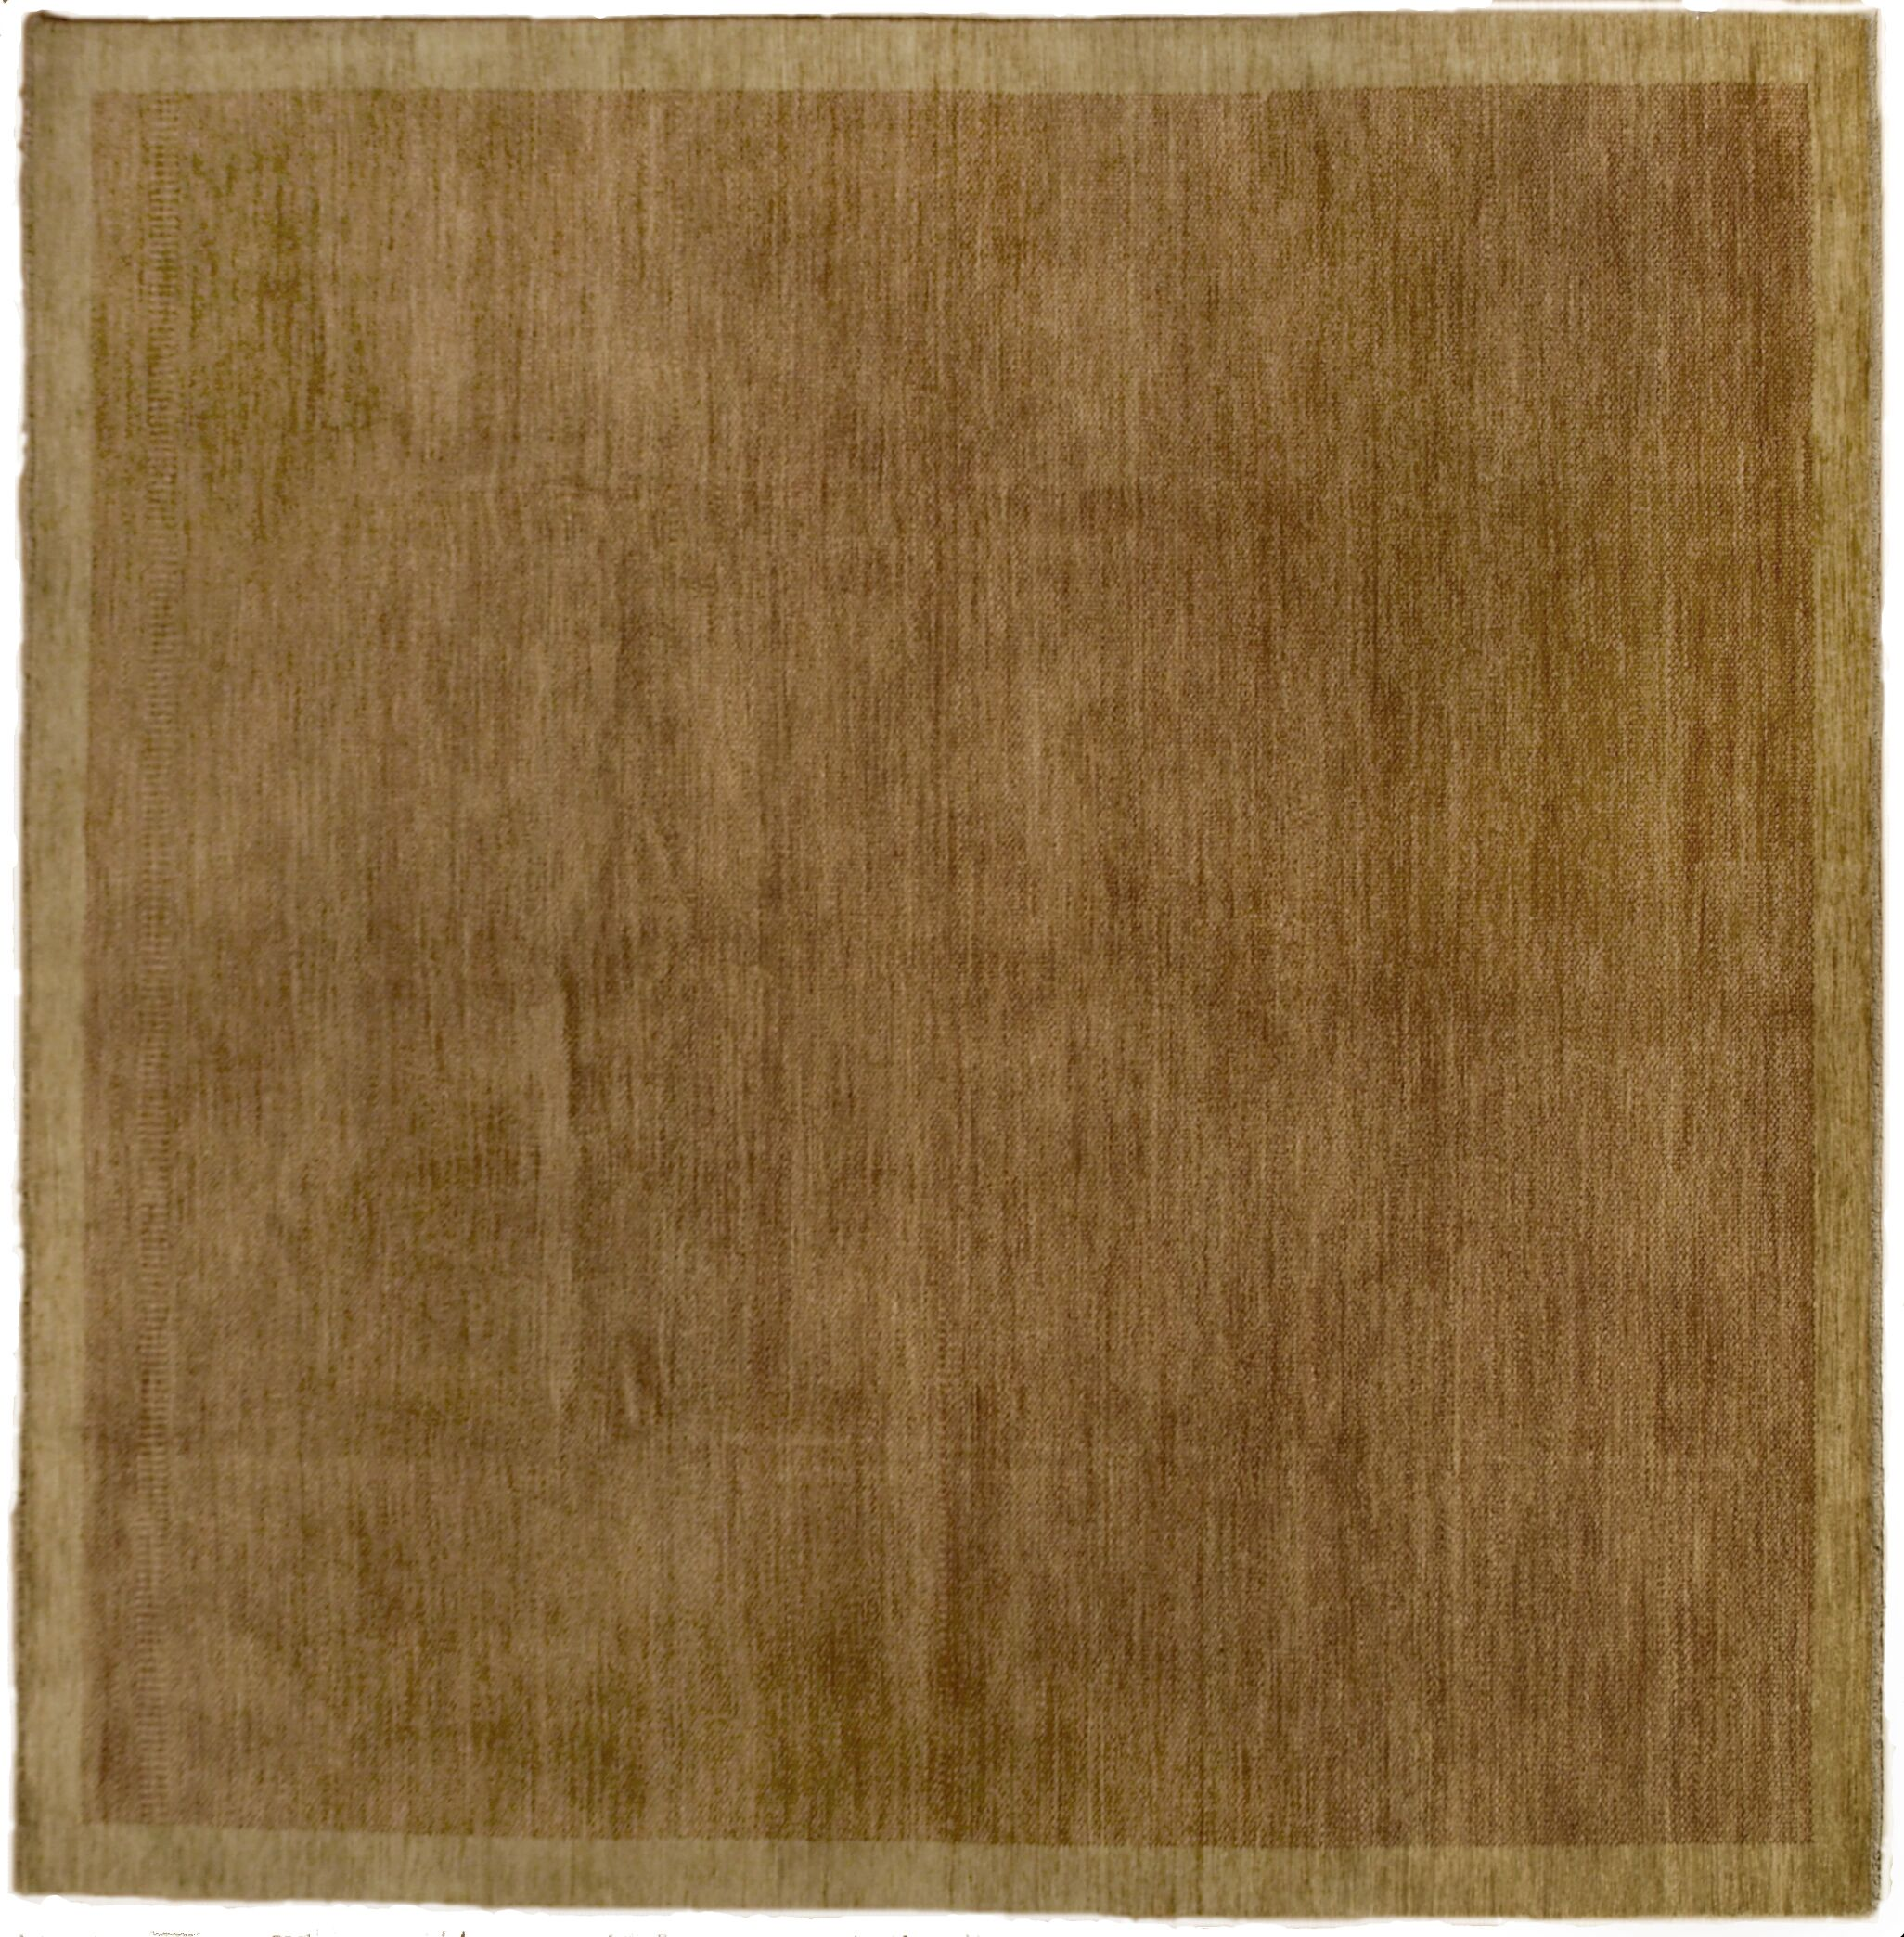 Buckingham Hand-Knotted Wool Brown Area Rug Rug Size: Rectangle 9' x 10'